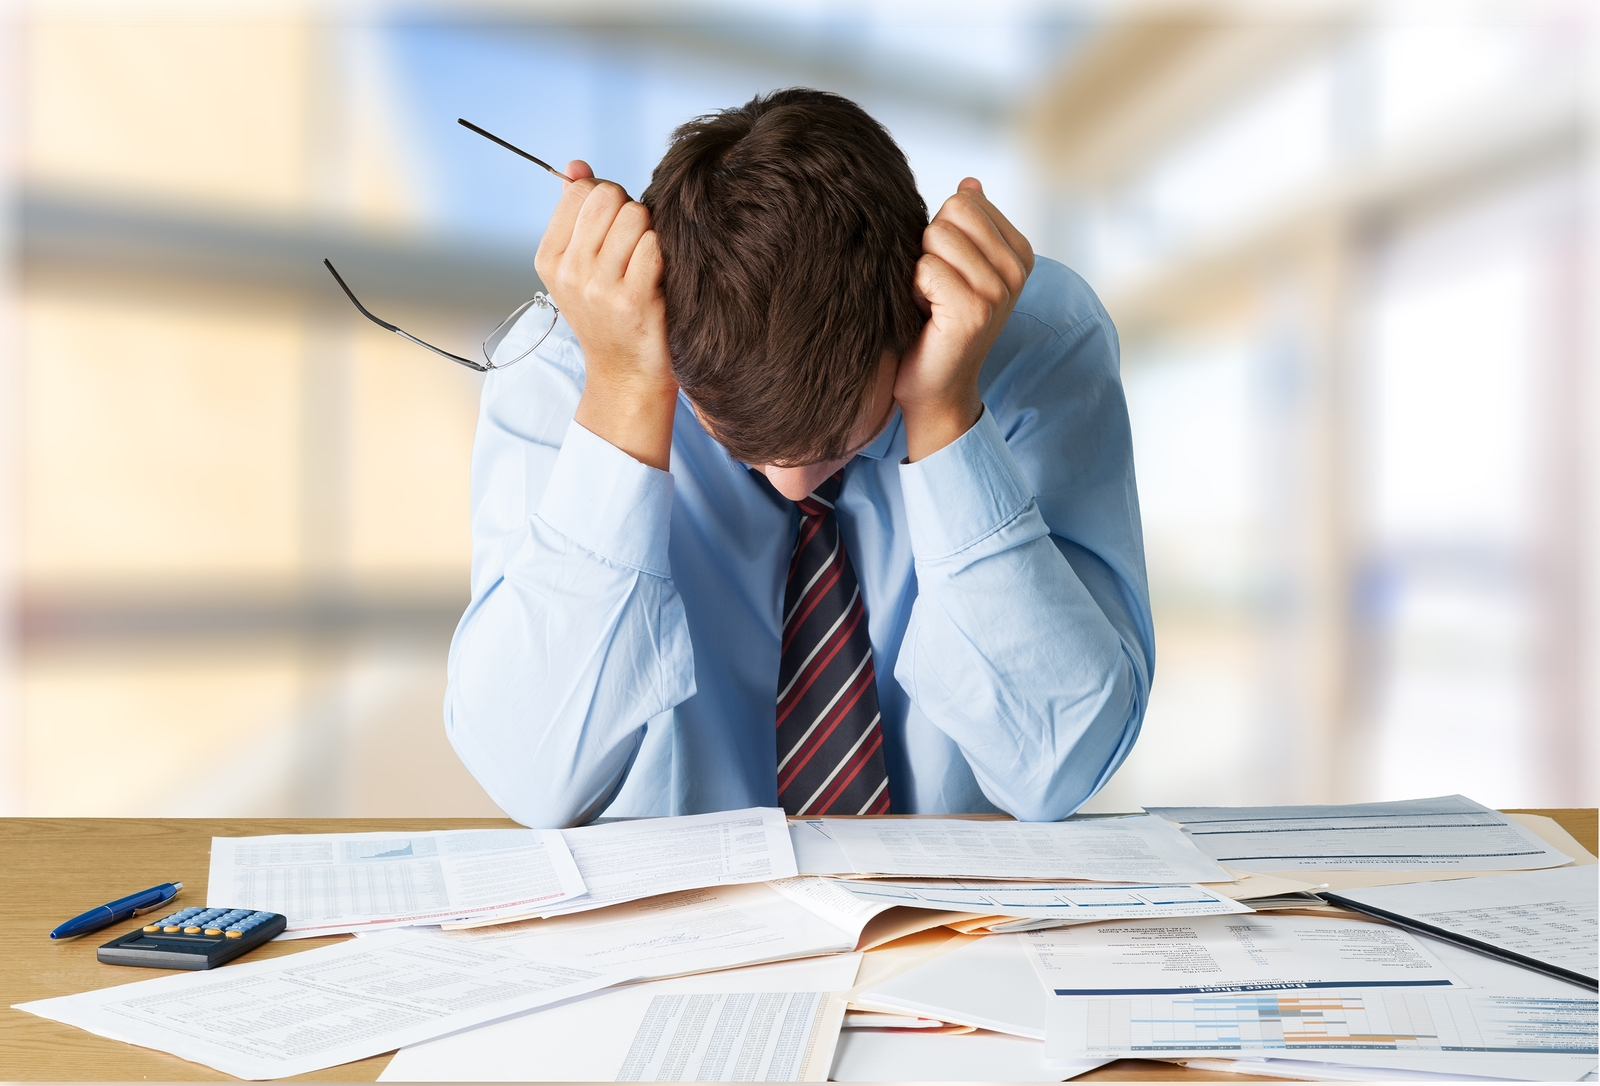 (In Florida) - Can You File A Claim For A Workplace Stress